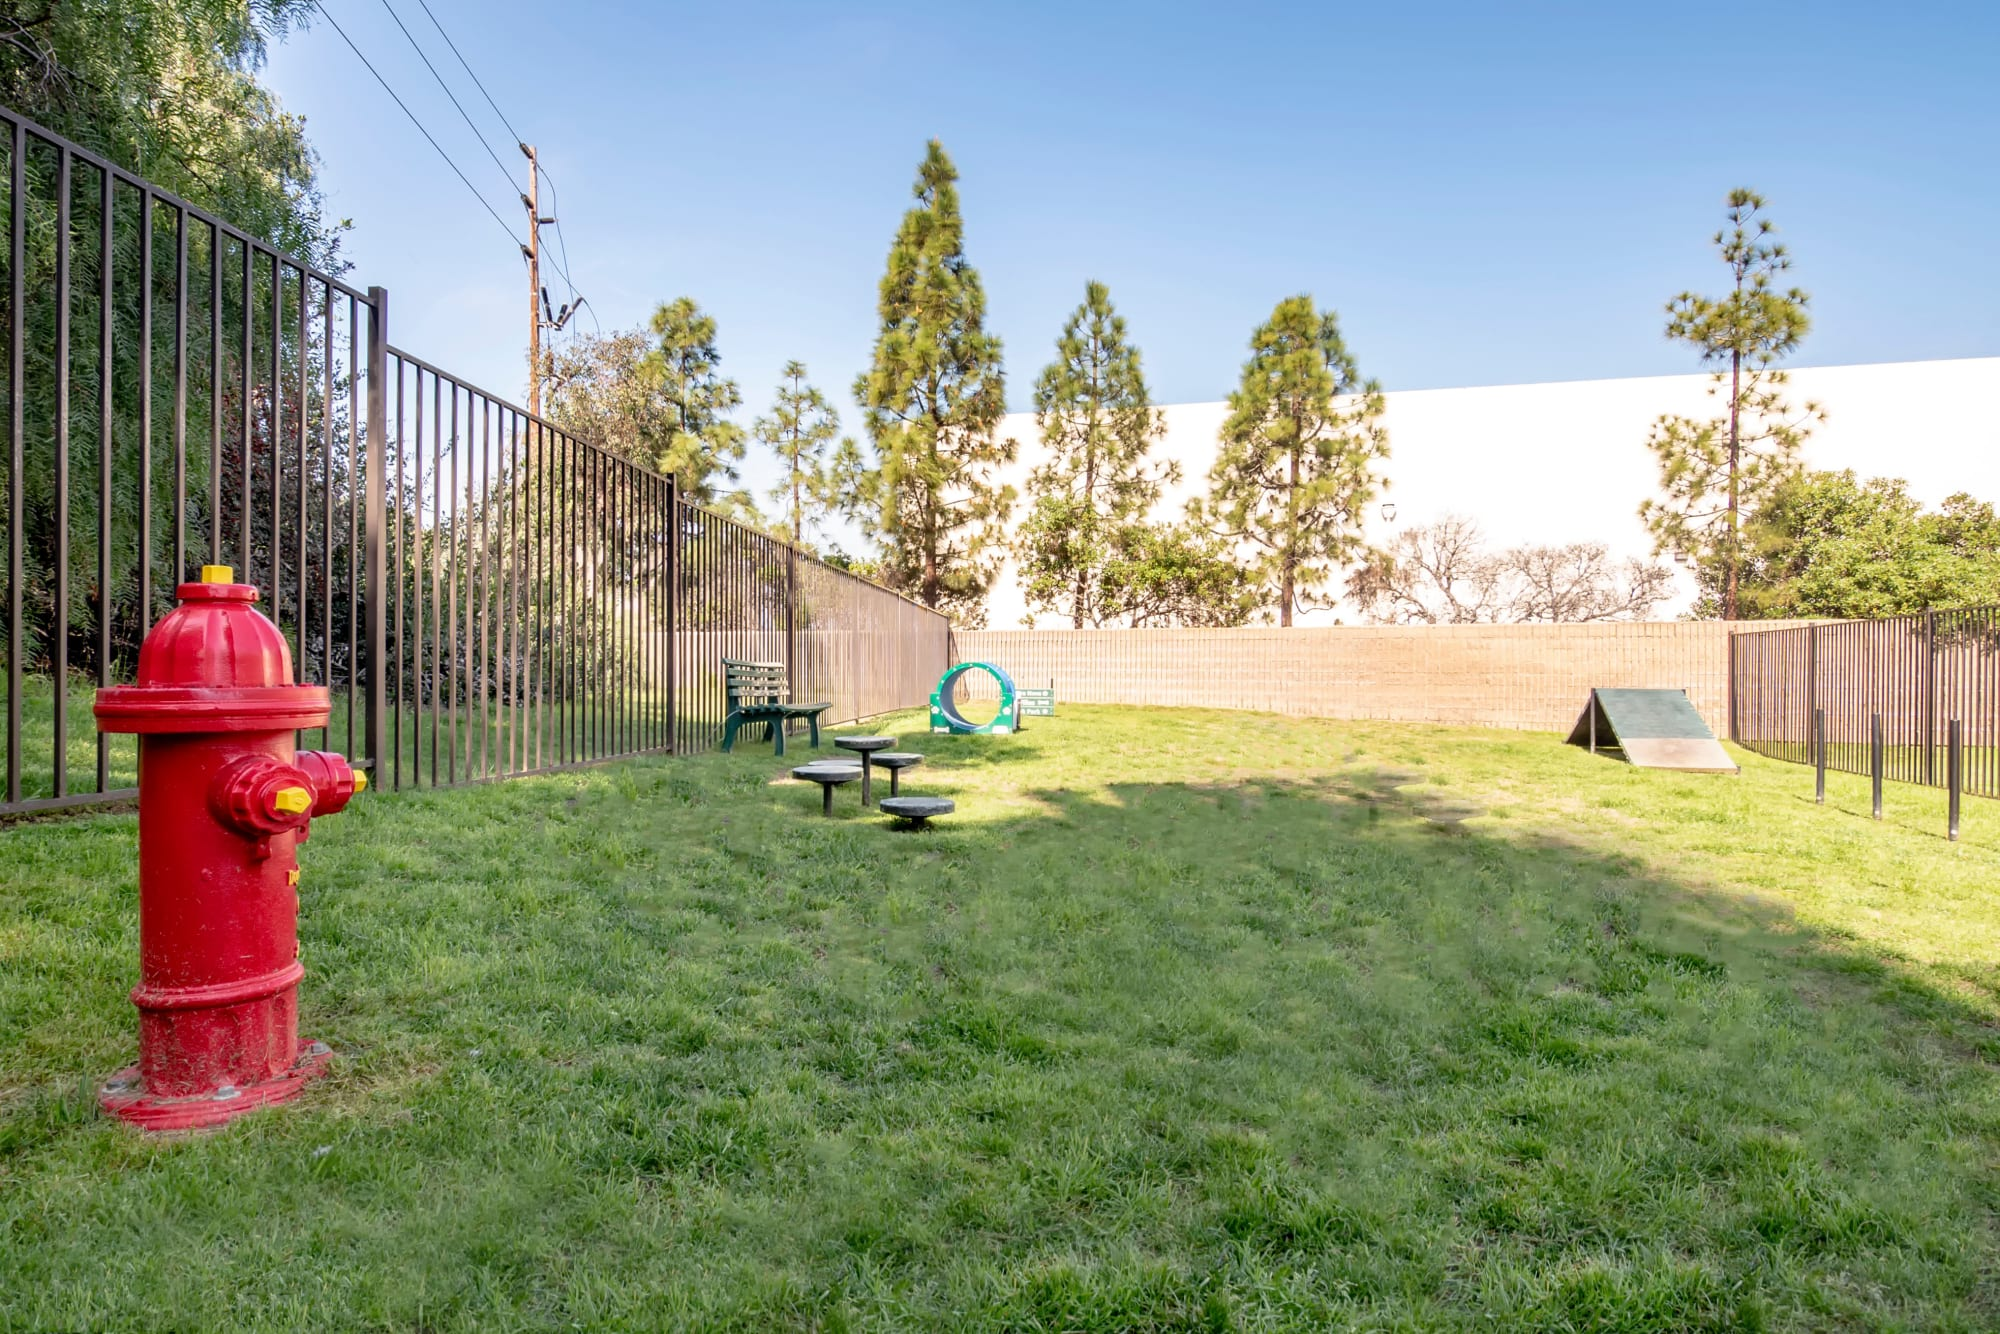 Off-Leash Dog Park - On-site